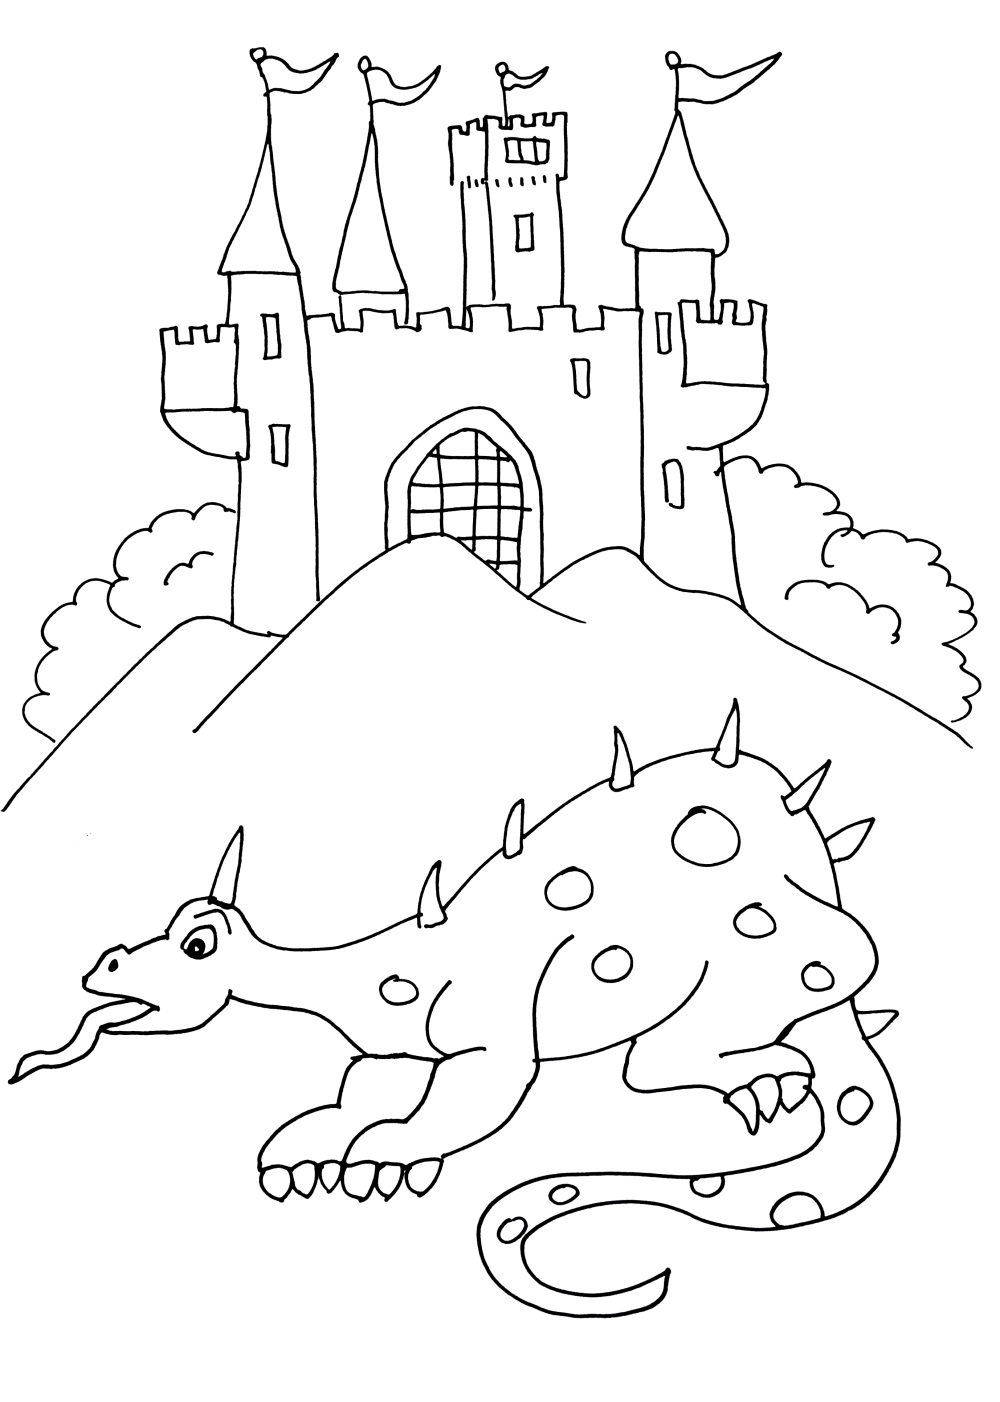 Funny Knights And Dragons coloring page